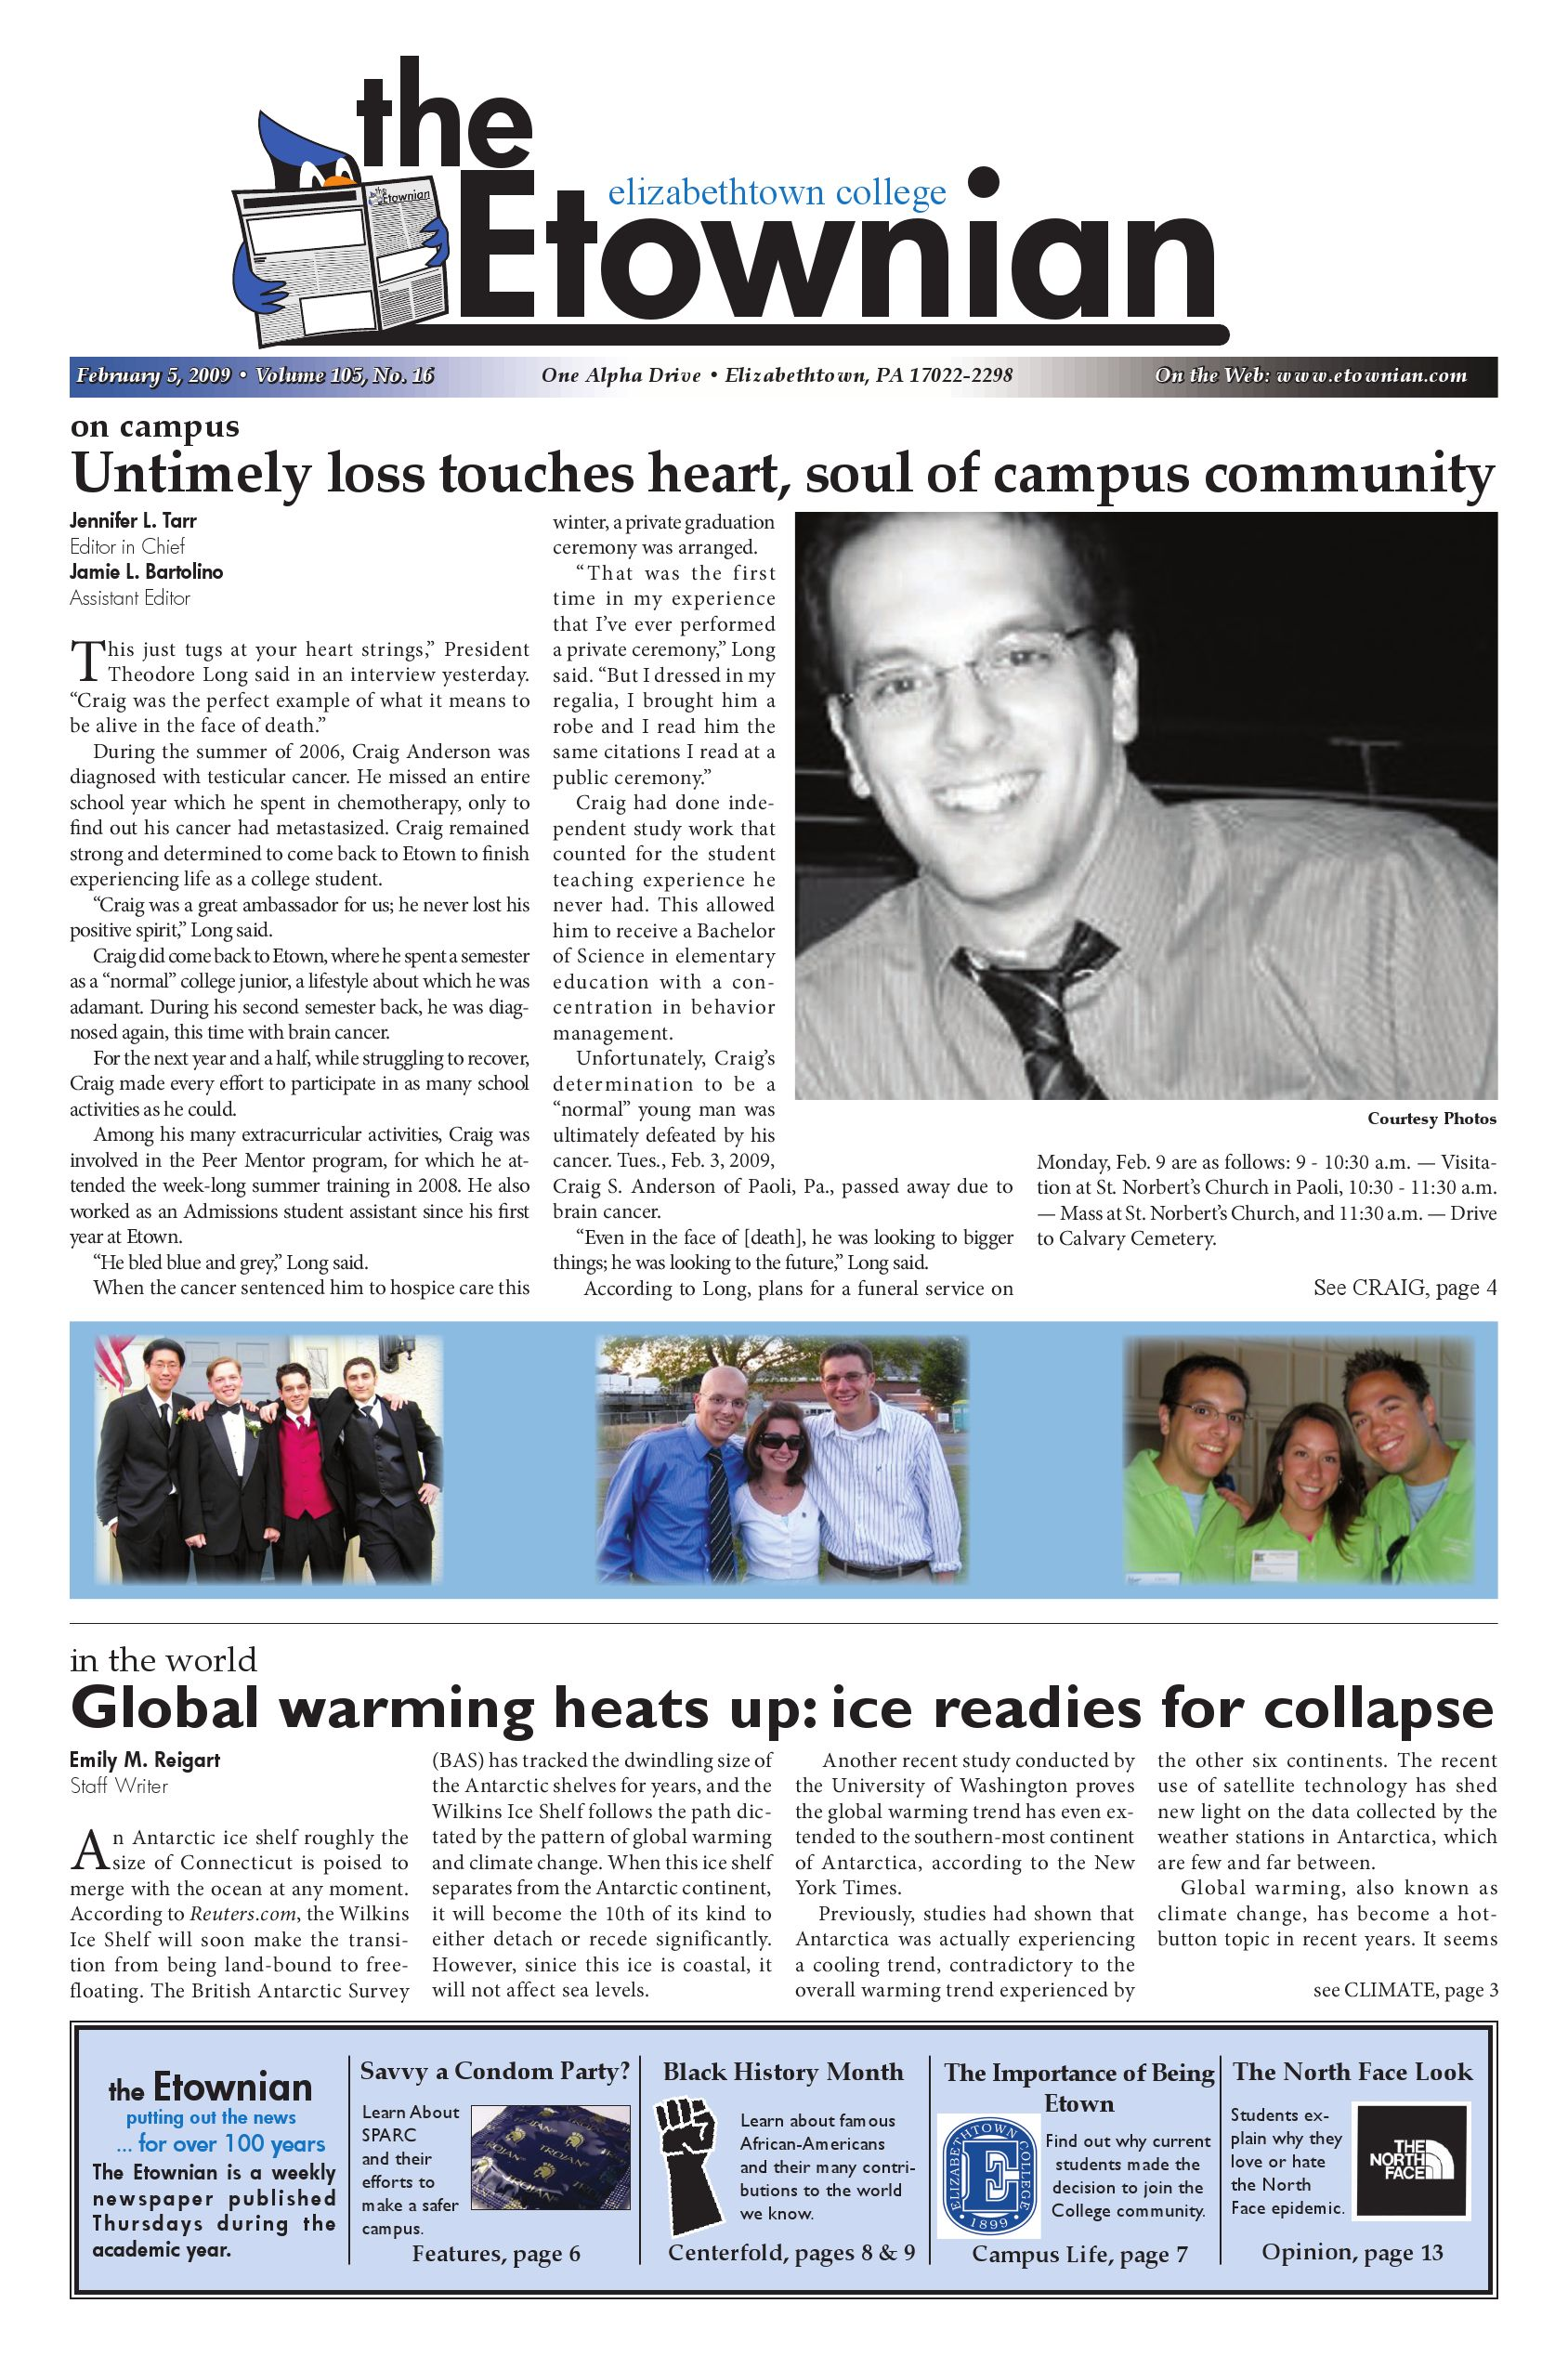 Etownian Issue 16 February 5 2009 by The Etownian issuu